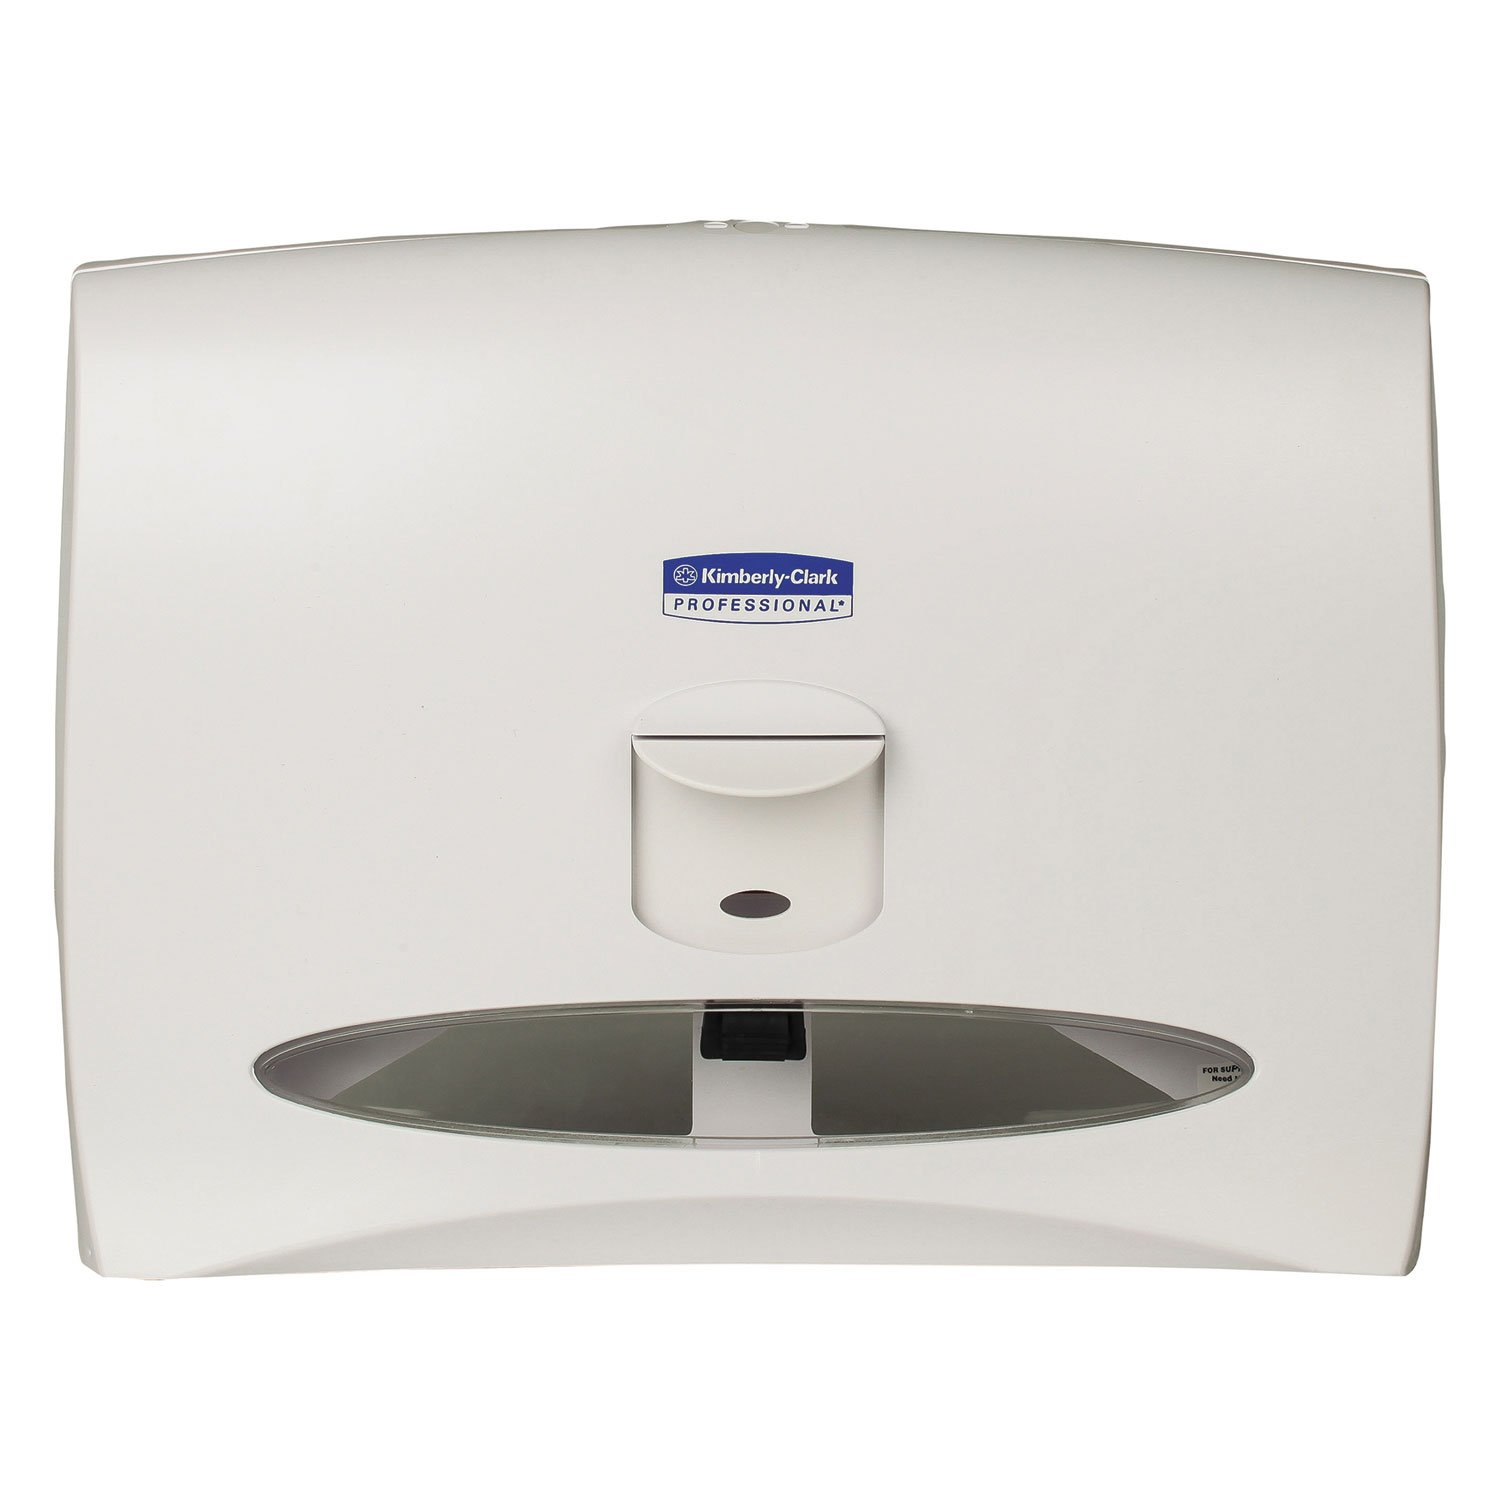 KCC09505 Windows In-Sight Toilet Seat Cover Dispenser, 17 1/2 x 3 1/4 x 13 1/4, White